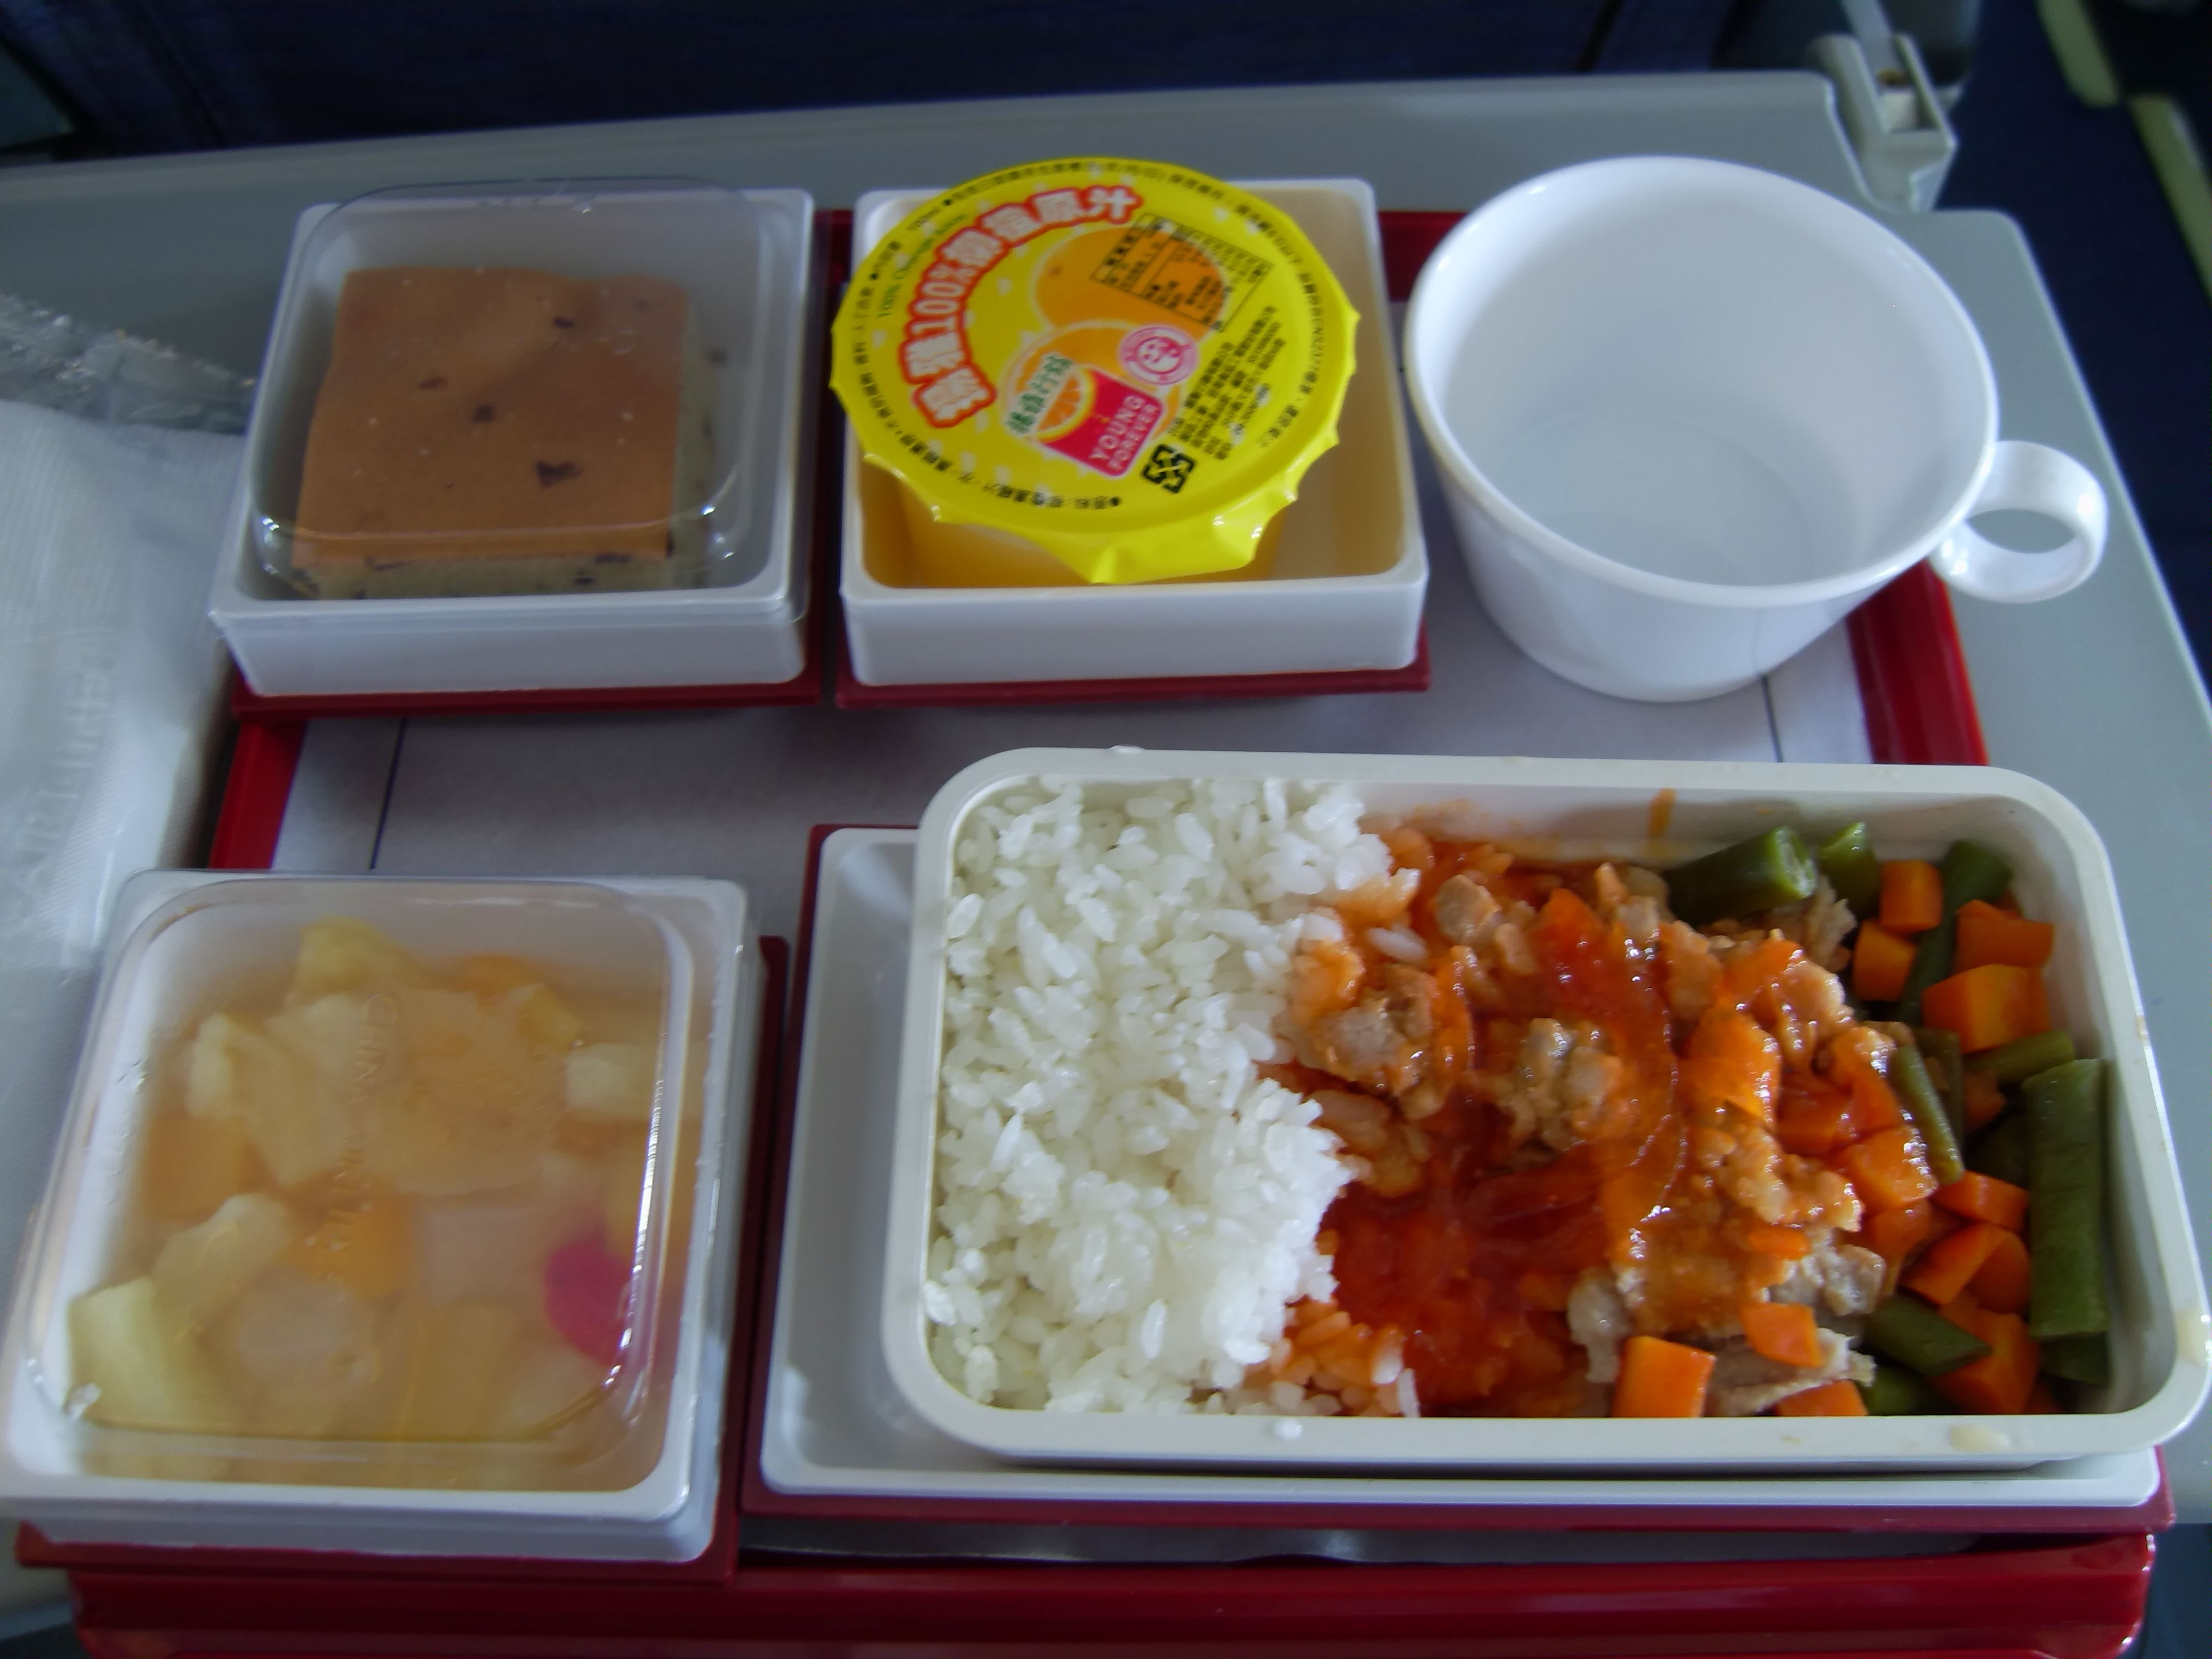 Economy class meal on China Airlines. Airplane Food